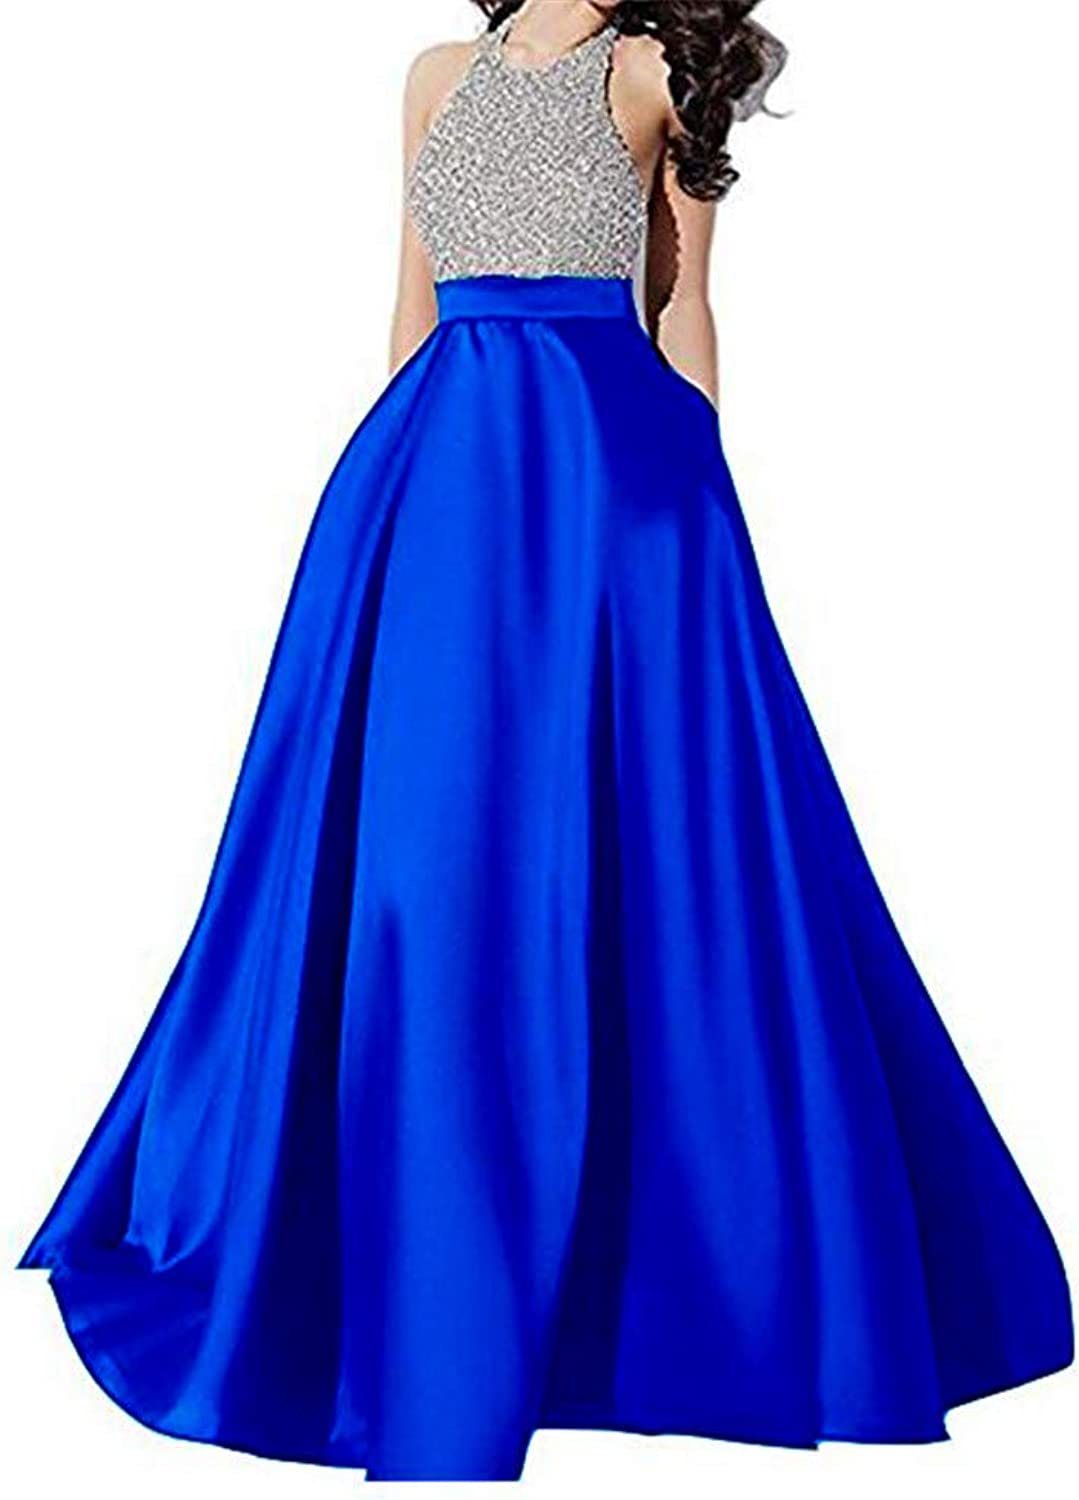 Emmani Women's Halter Neck Sleeveless Beaded A Line Prom Gown Pocket Backless Formal Satin Evening Wedding Dresses Long